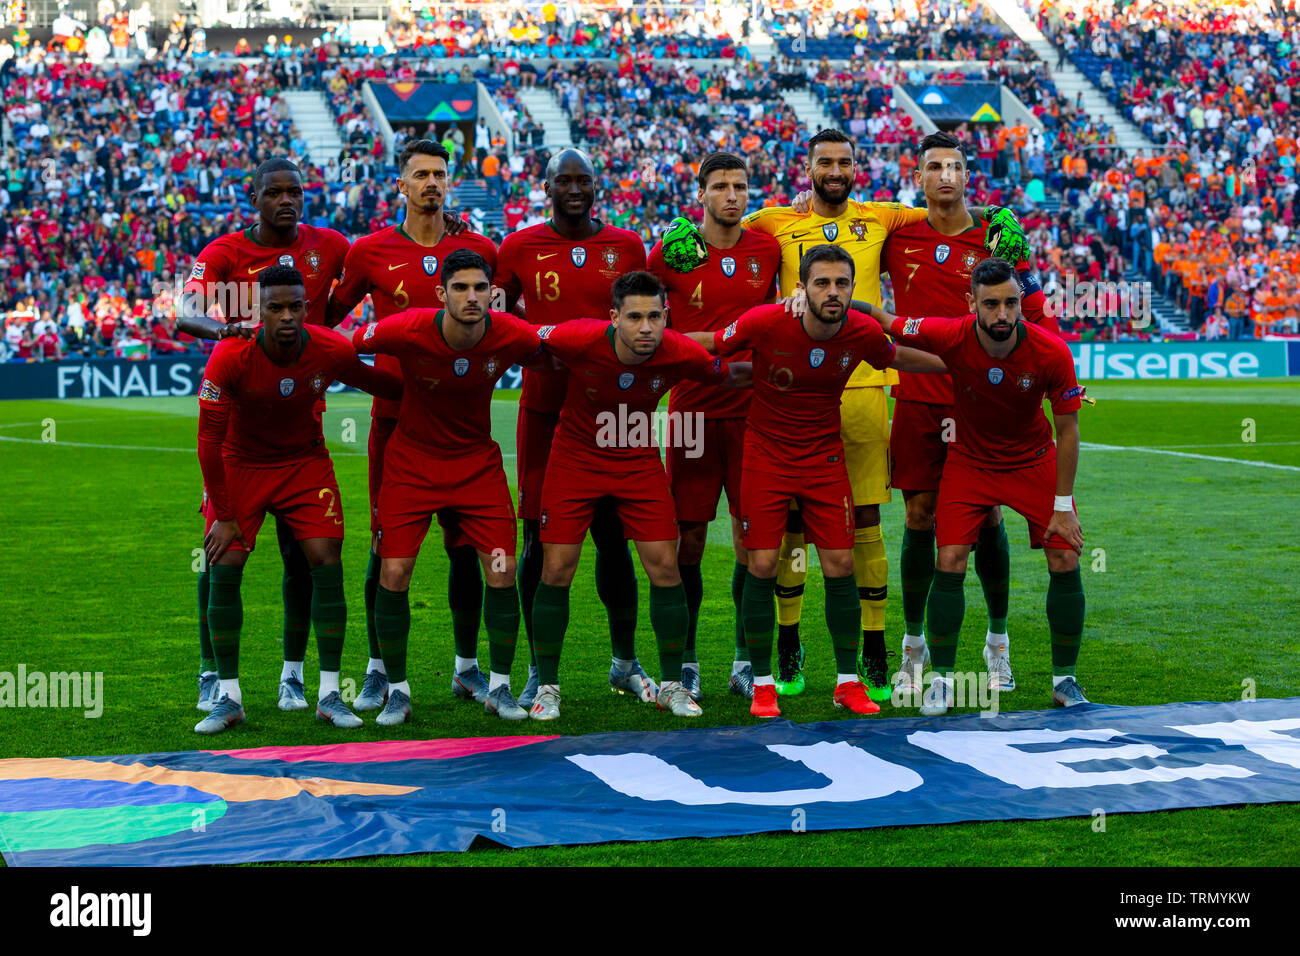 Portugal Line Up Before The Match For The Uefa Nations League Final At Dragon Stadium On 9 June 2019 In Porto Portugal Final Score Portugal 1 0 Netherland Credit Diogo Baptista Sopa Stock Photo Alamy